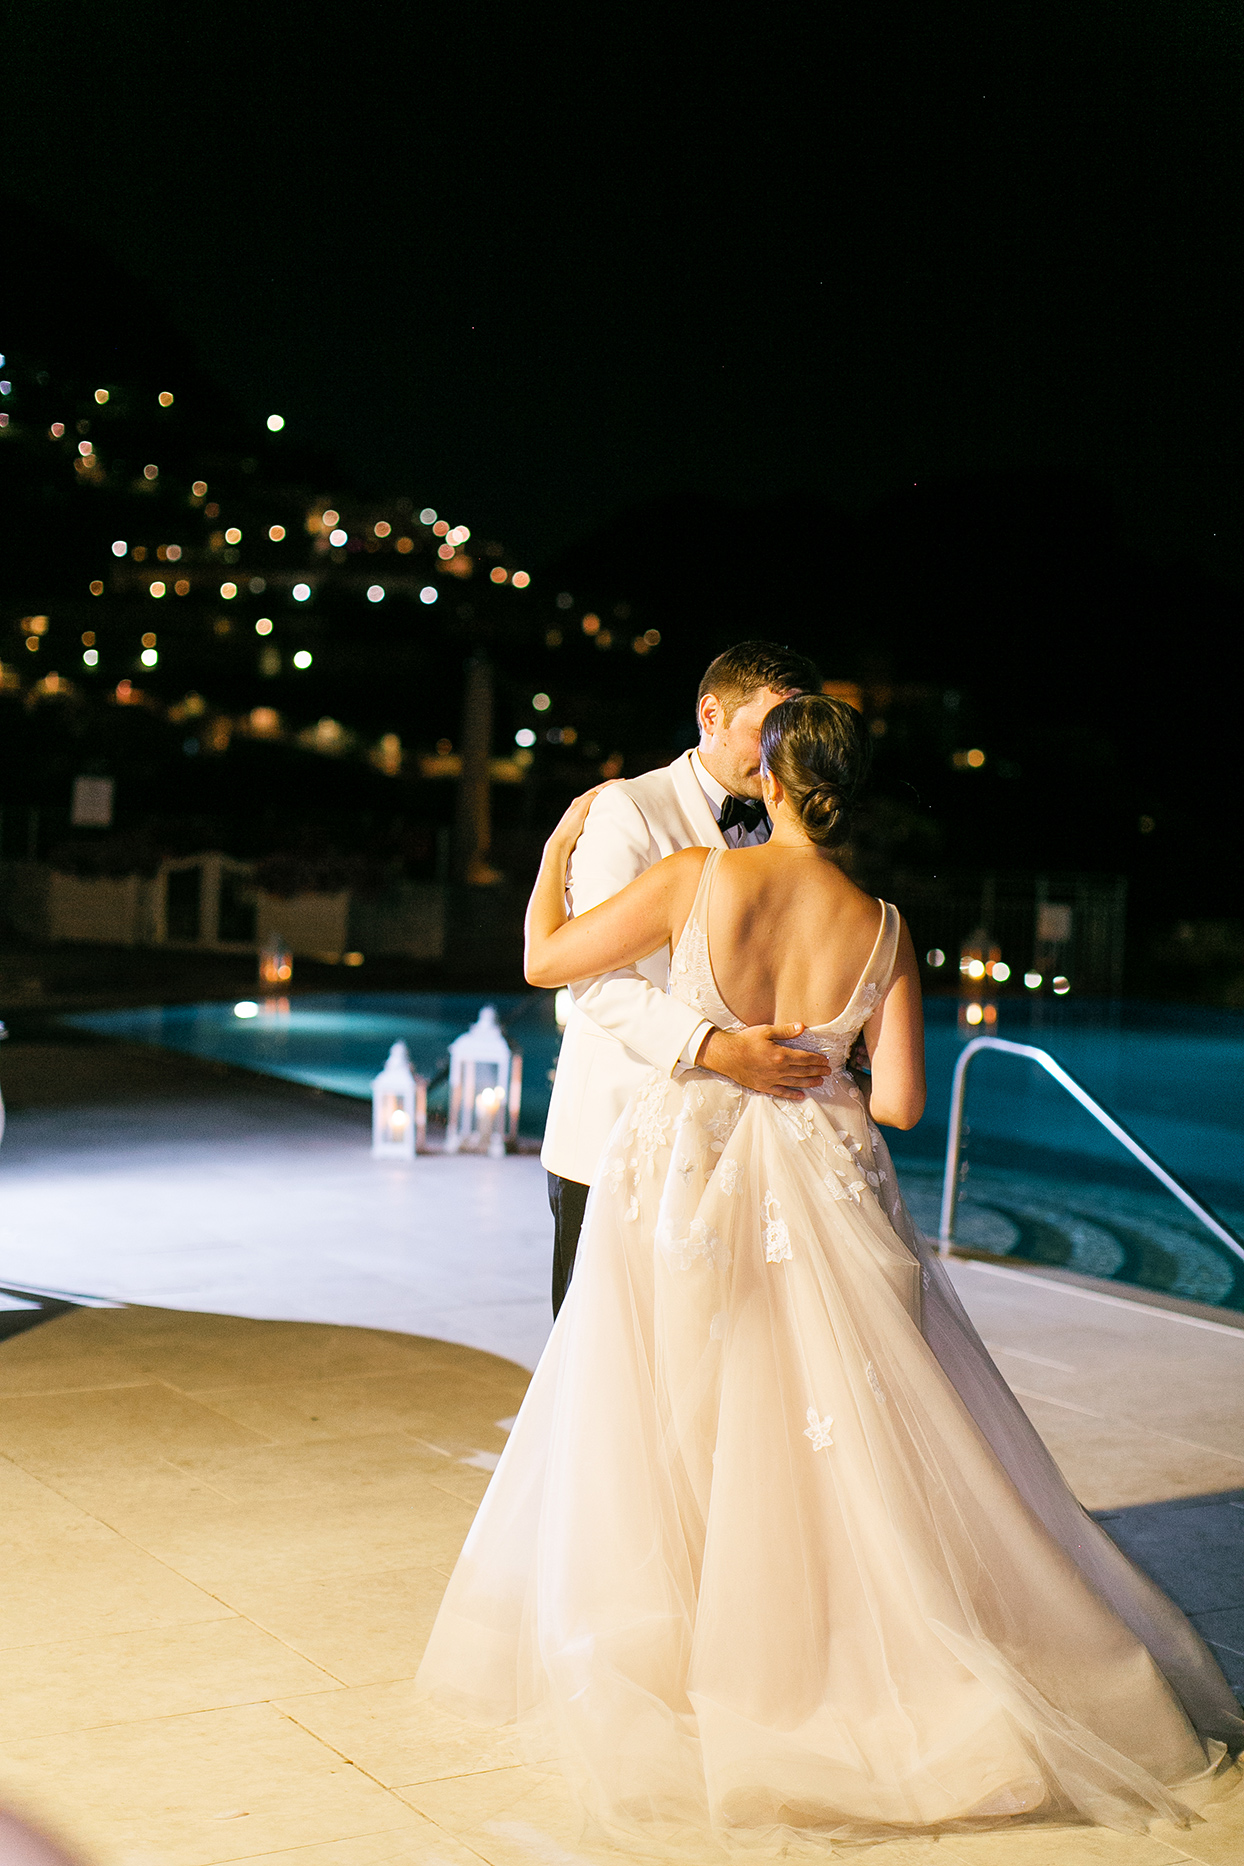 jacqueline david wedding first dance by pool